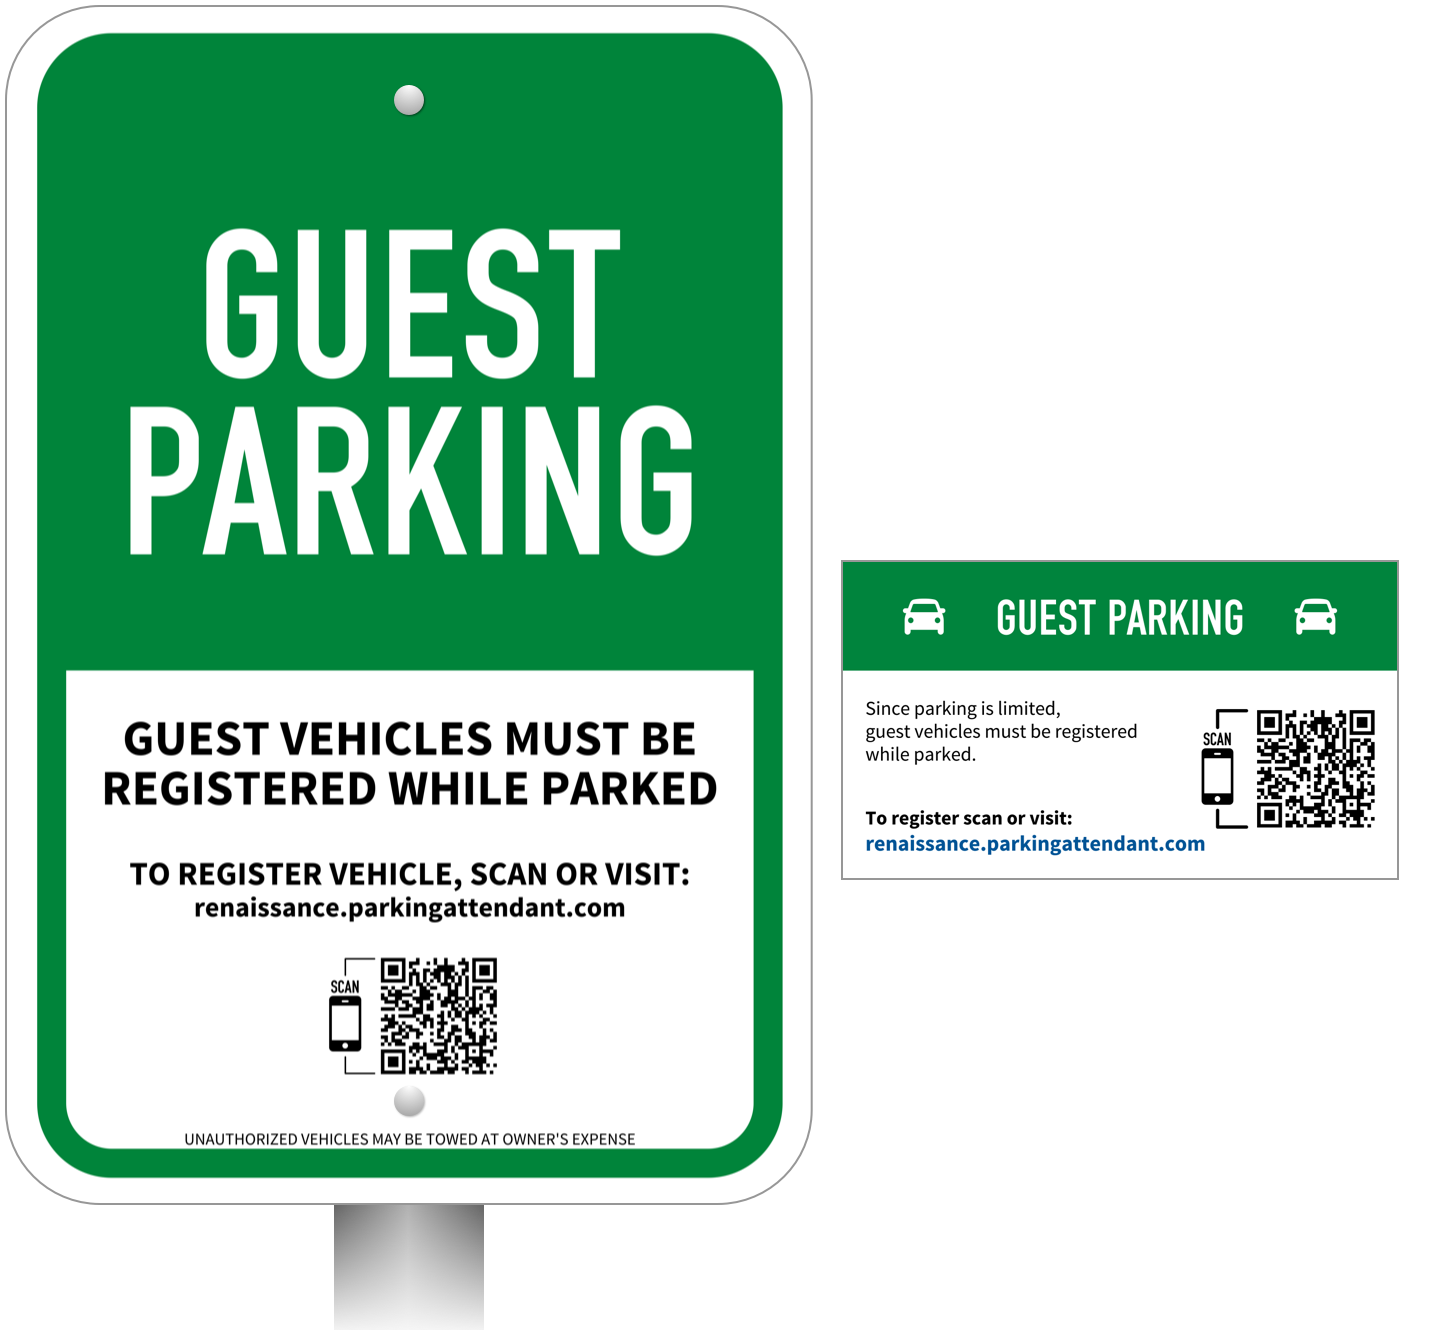 The guest parking signs and magnets direct the guests to the Virtual Attendant. Handy refrigerator magnets are given to the residents for a quick way to register their guests.